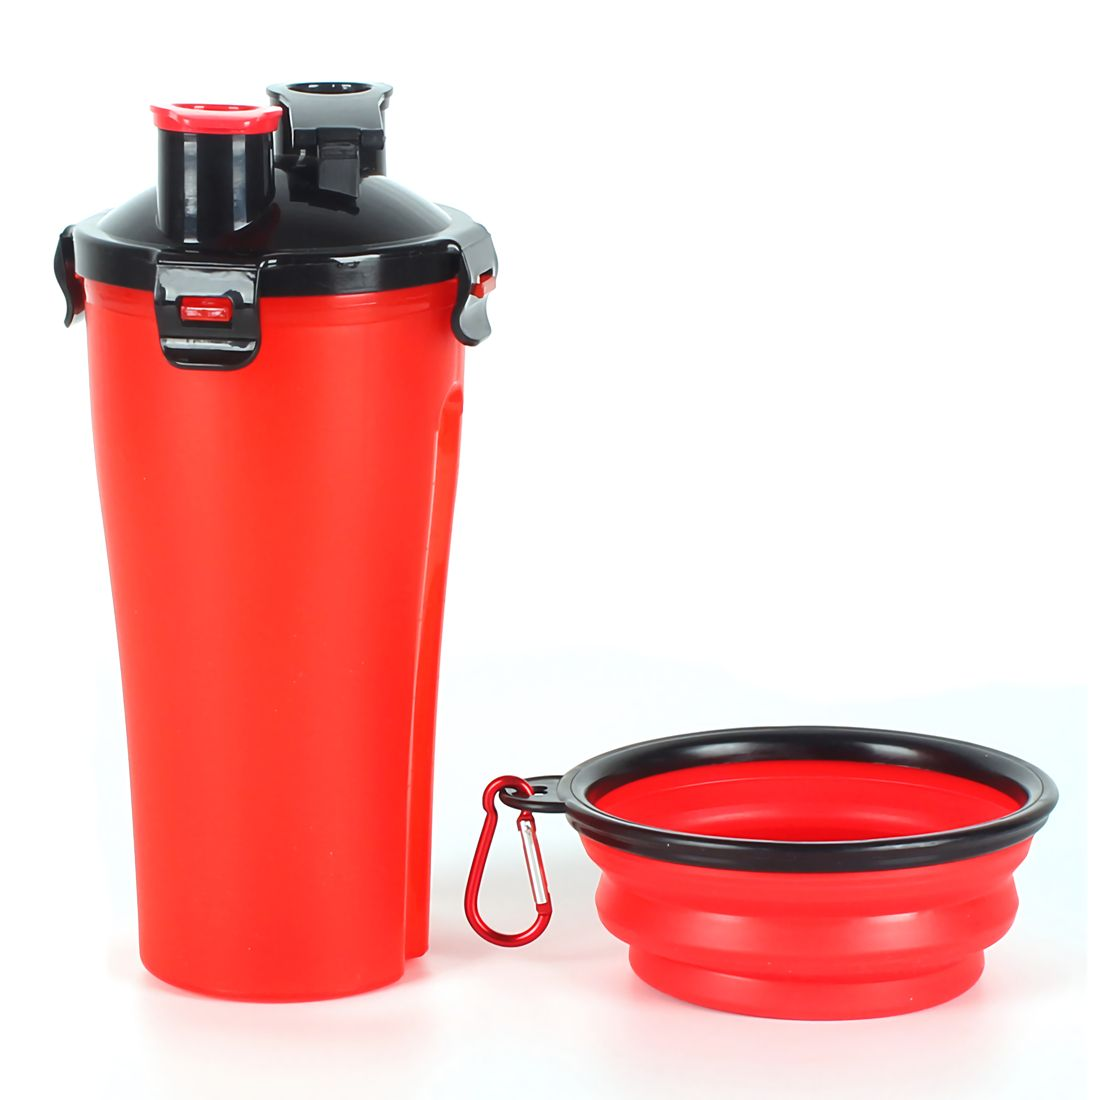 300ml Portable Pet Dog Water Bottle Travel Dog Bowl Cups: Pet Drinking Water Bottle With Bowl,2 In 1 Portable Pet